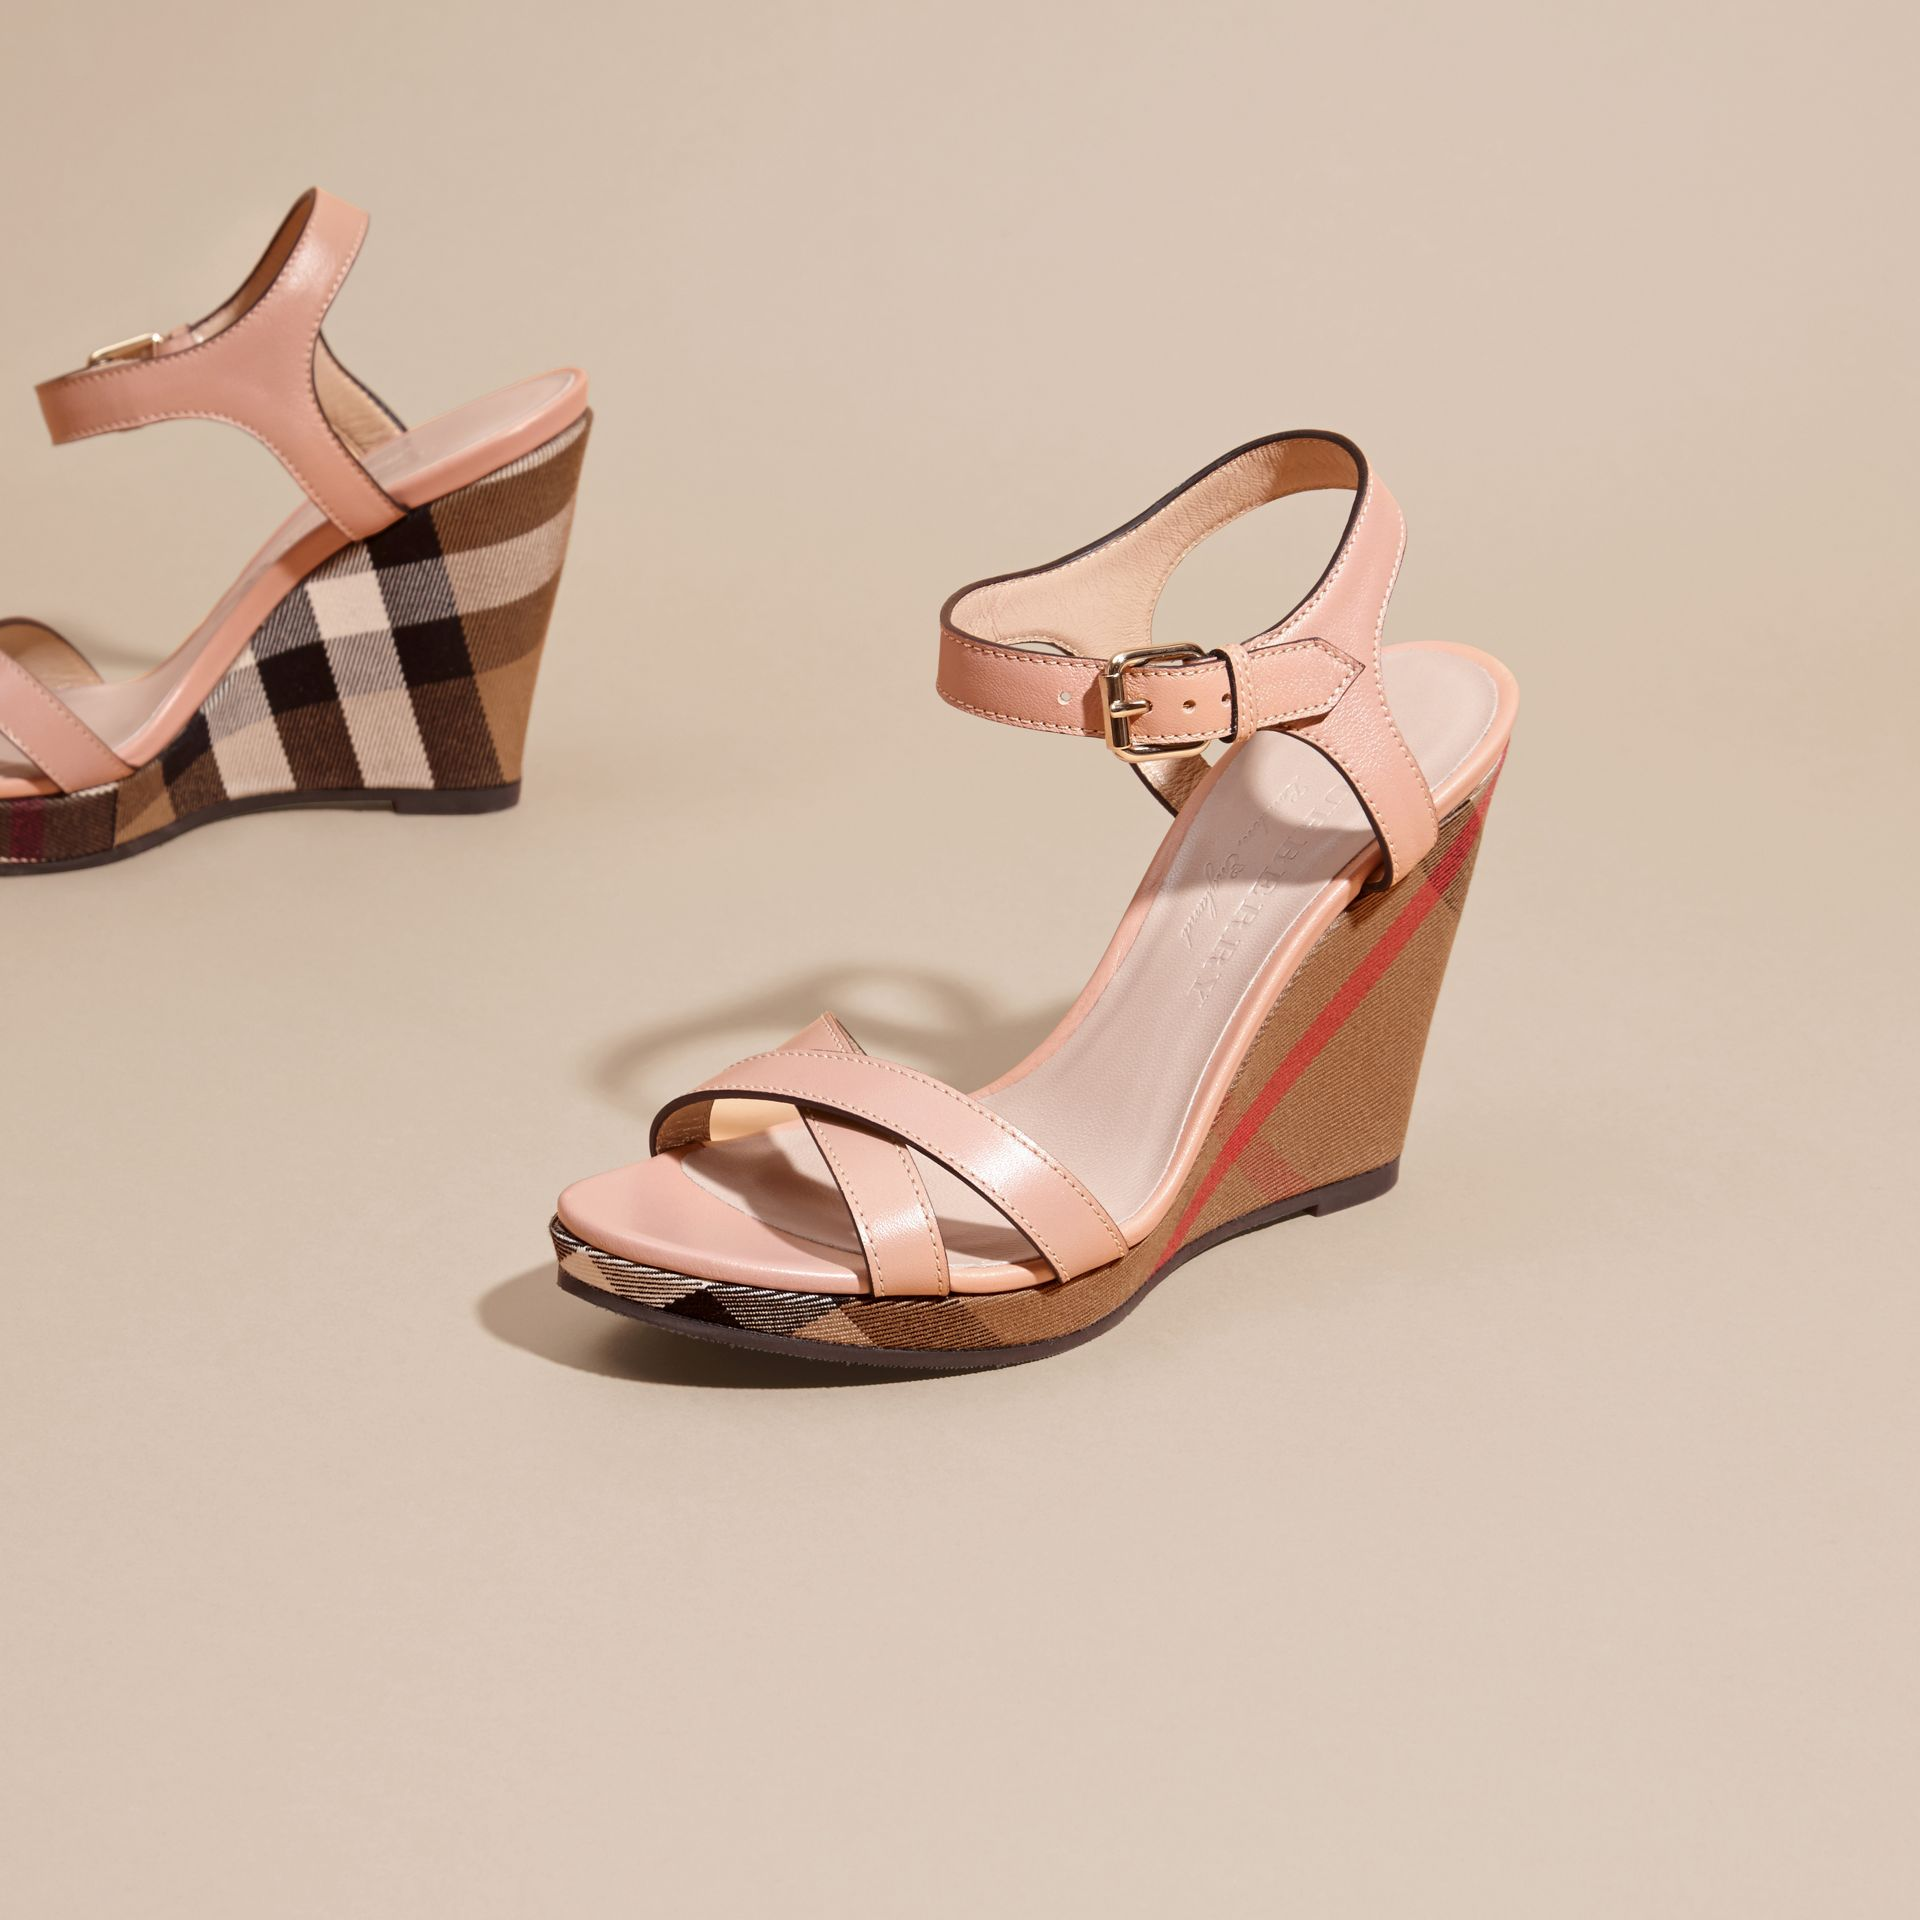 House Check Detail Leather Wedge Sandals - Women | Burberry - gallery image 3